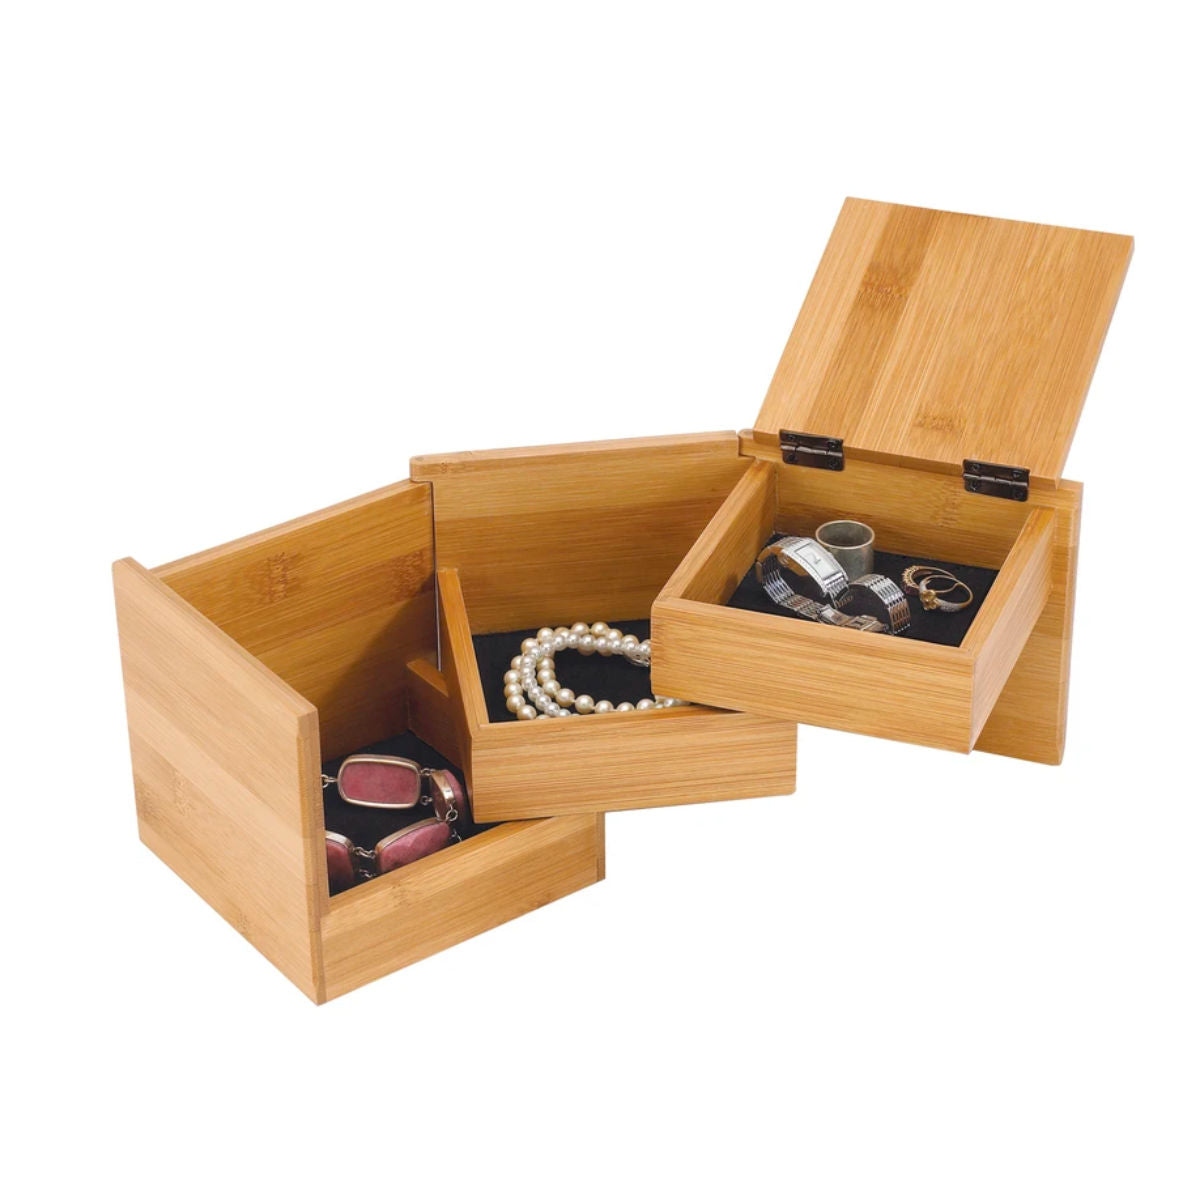 Umbra Tuck jewellery storage box